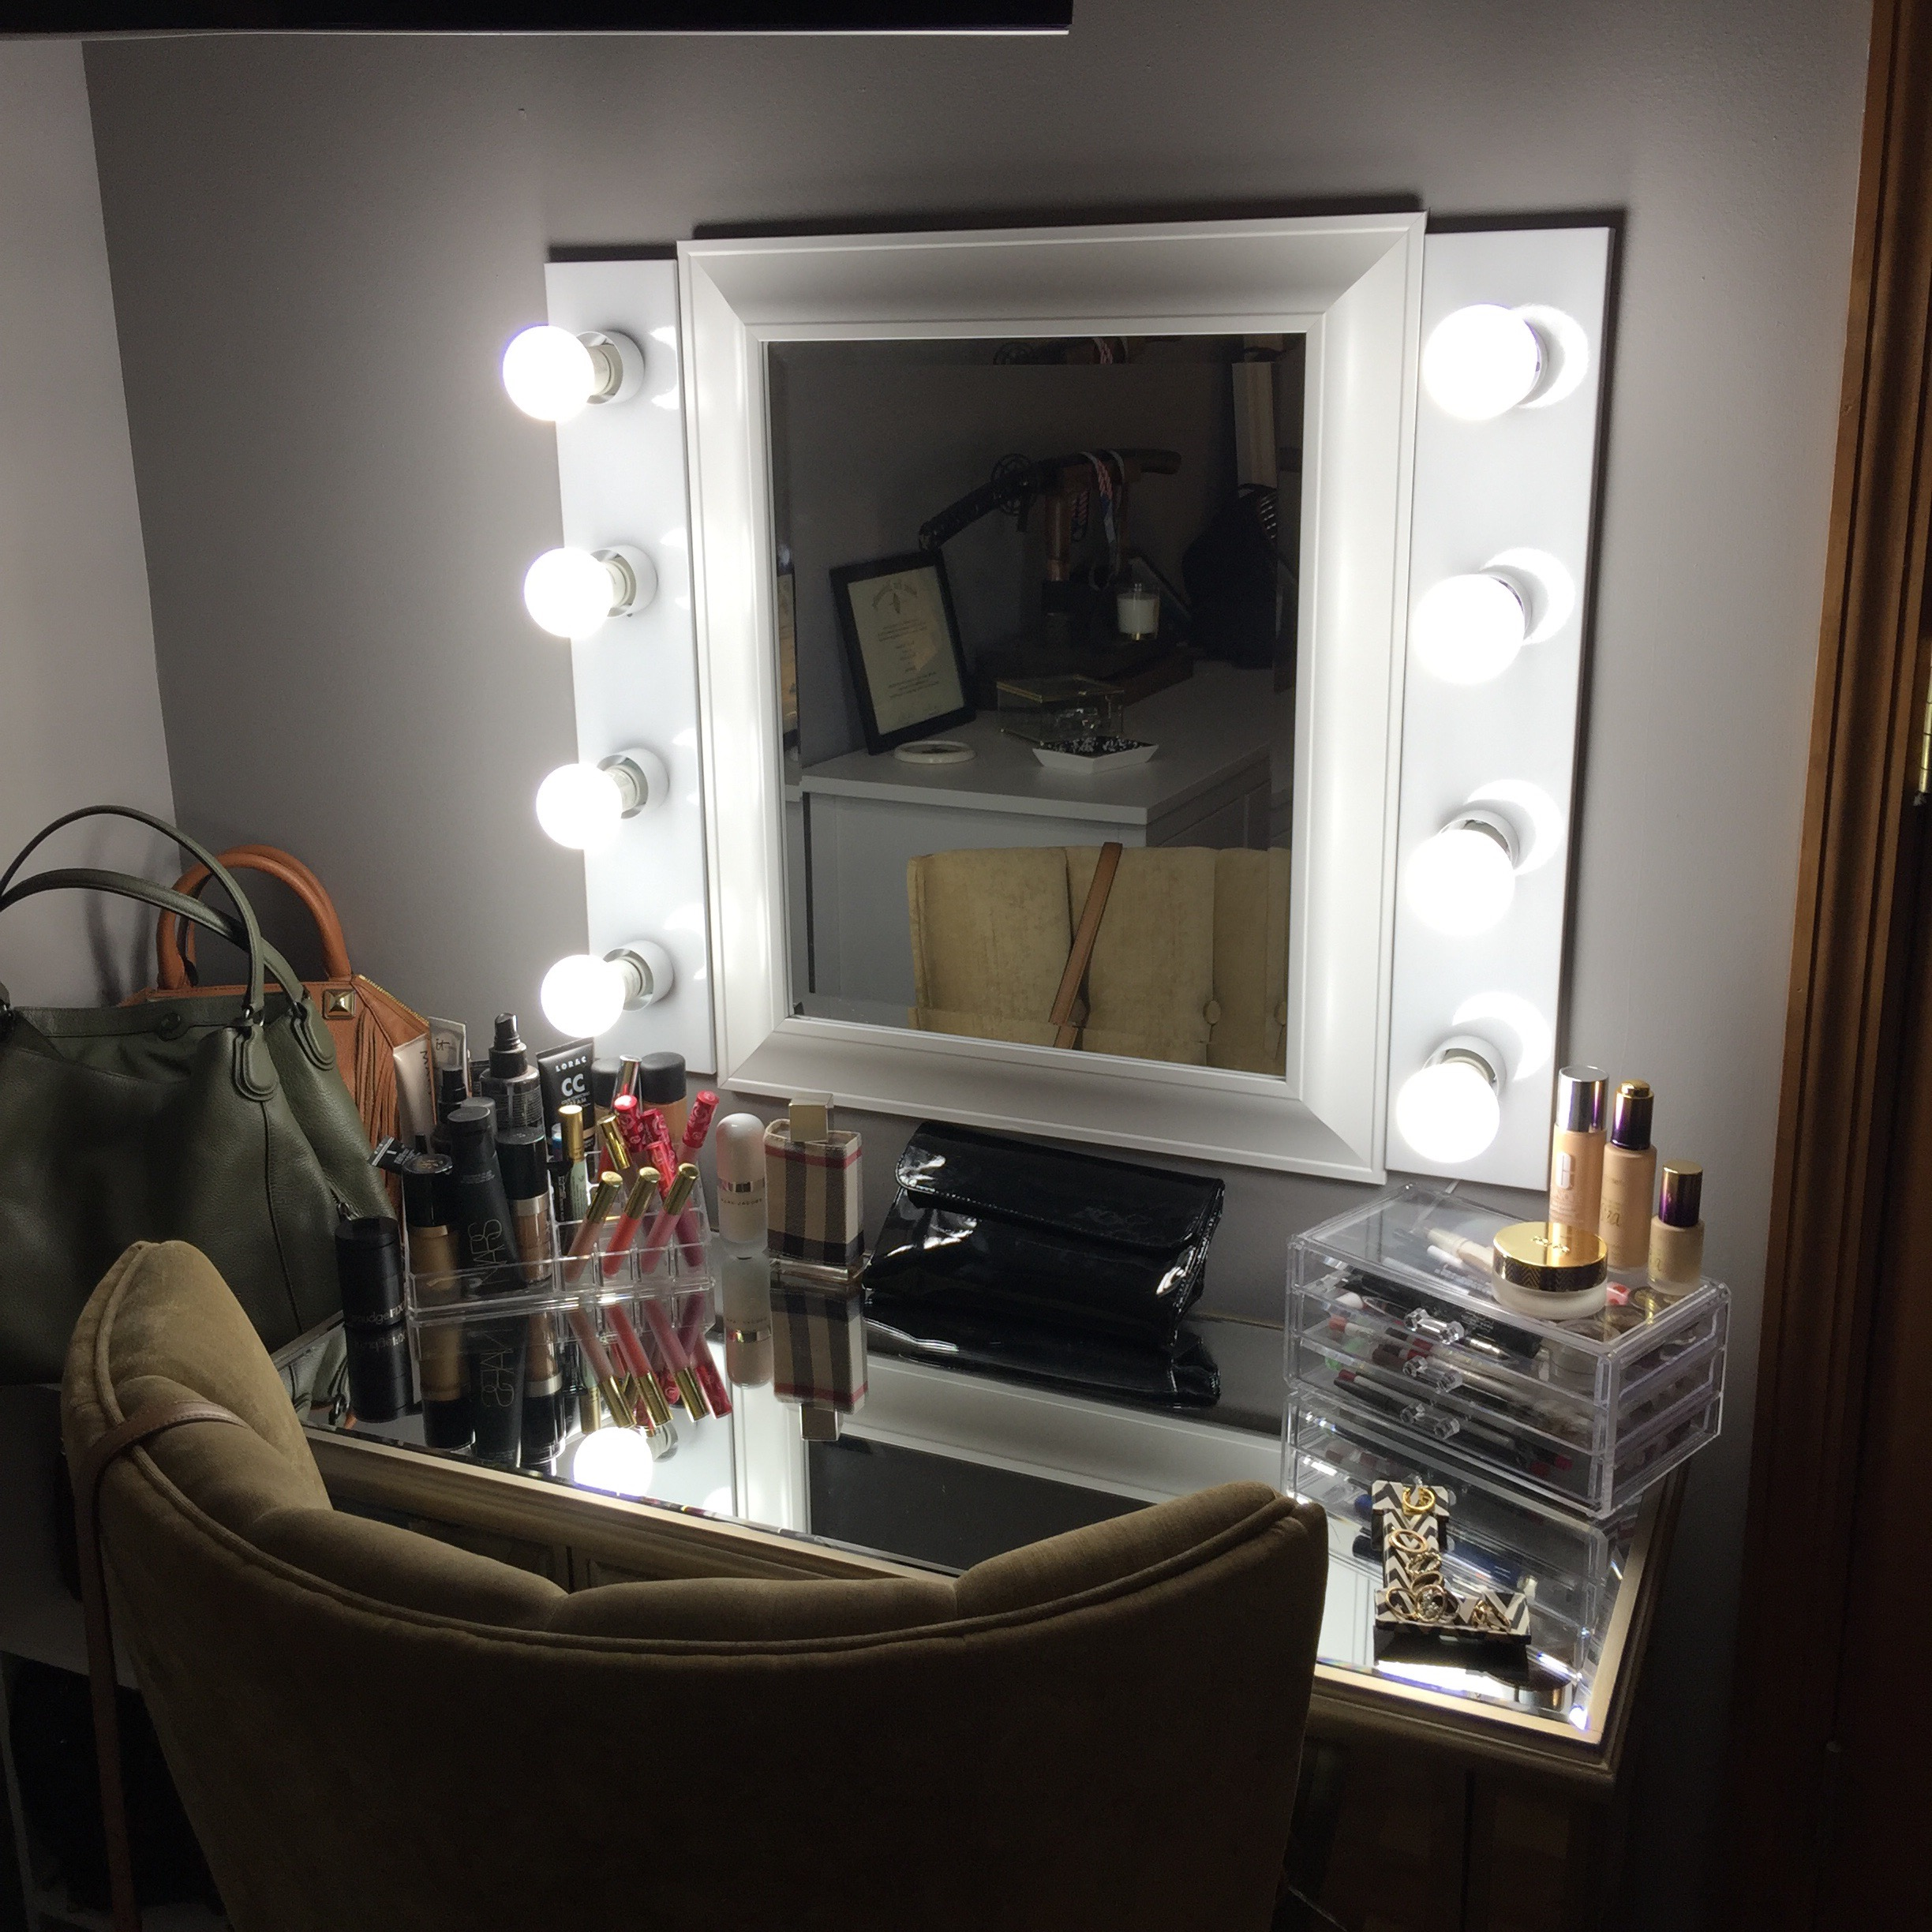 Home goods vanity table image collections coffee table design ideas happy st vanity for the glamorous love of fashion my mirrored vanity table five drawer chest geotapseo Images